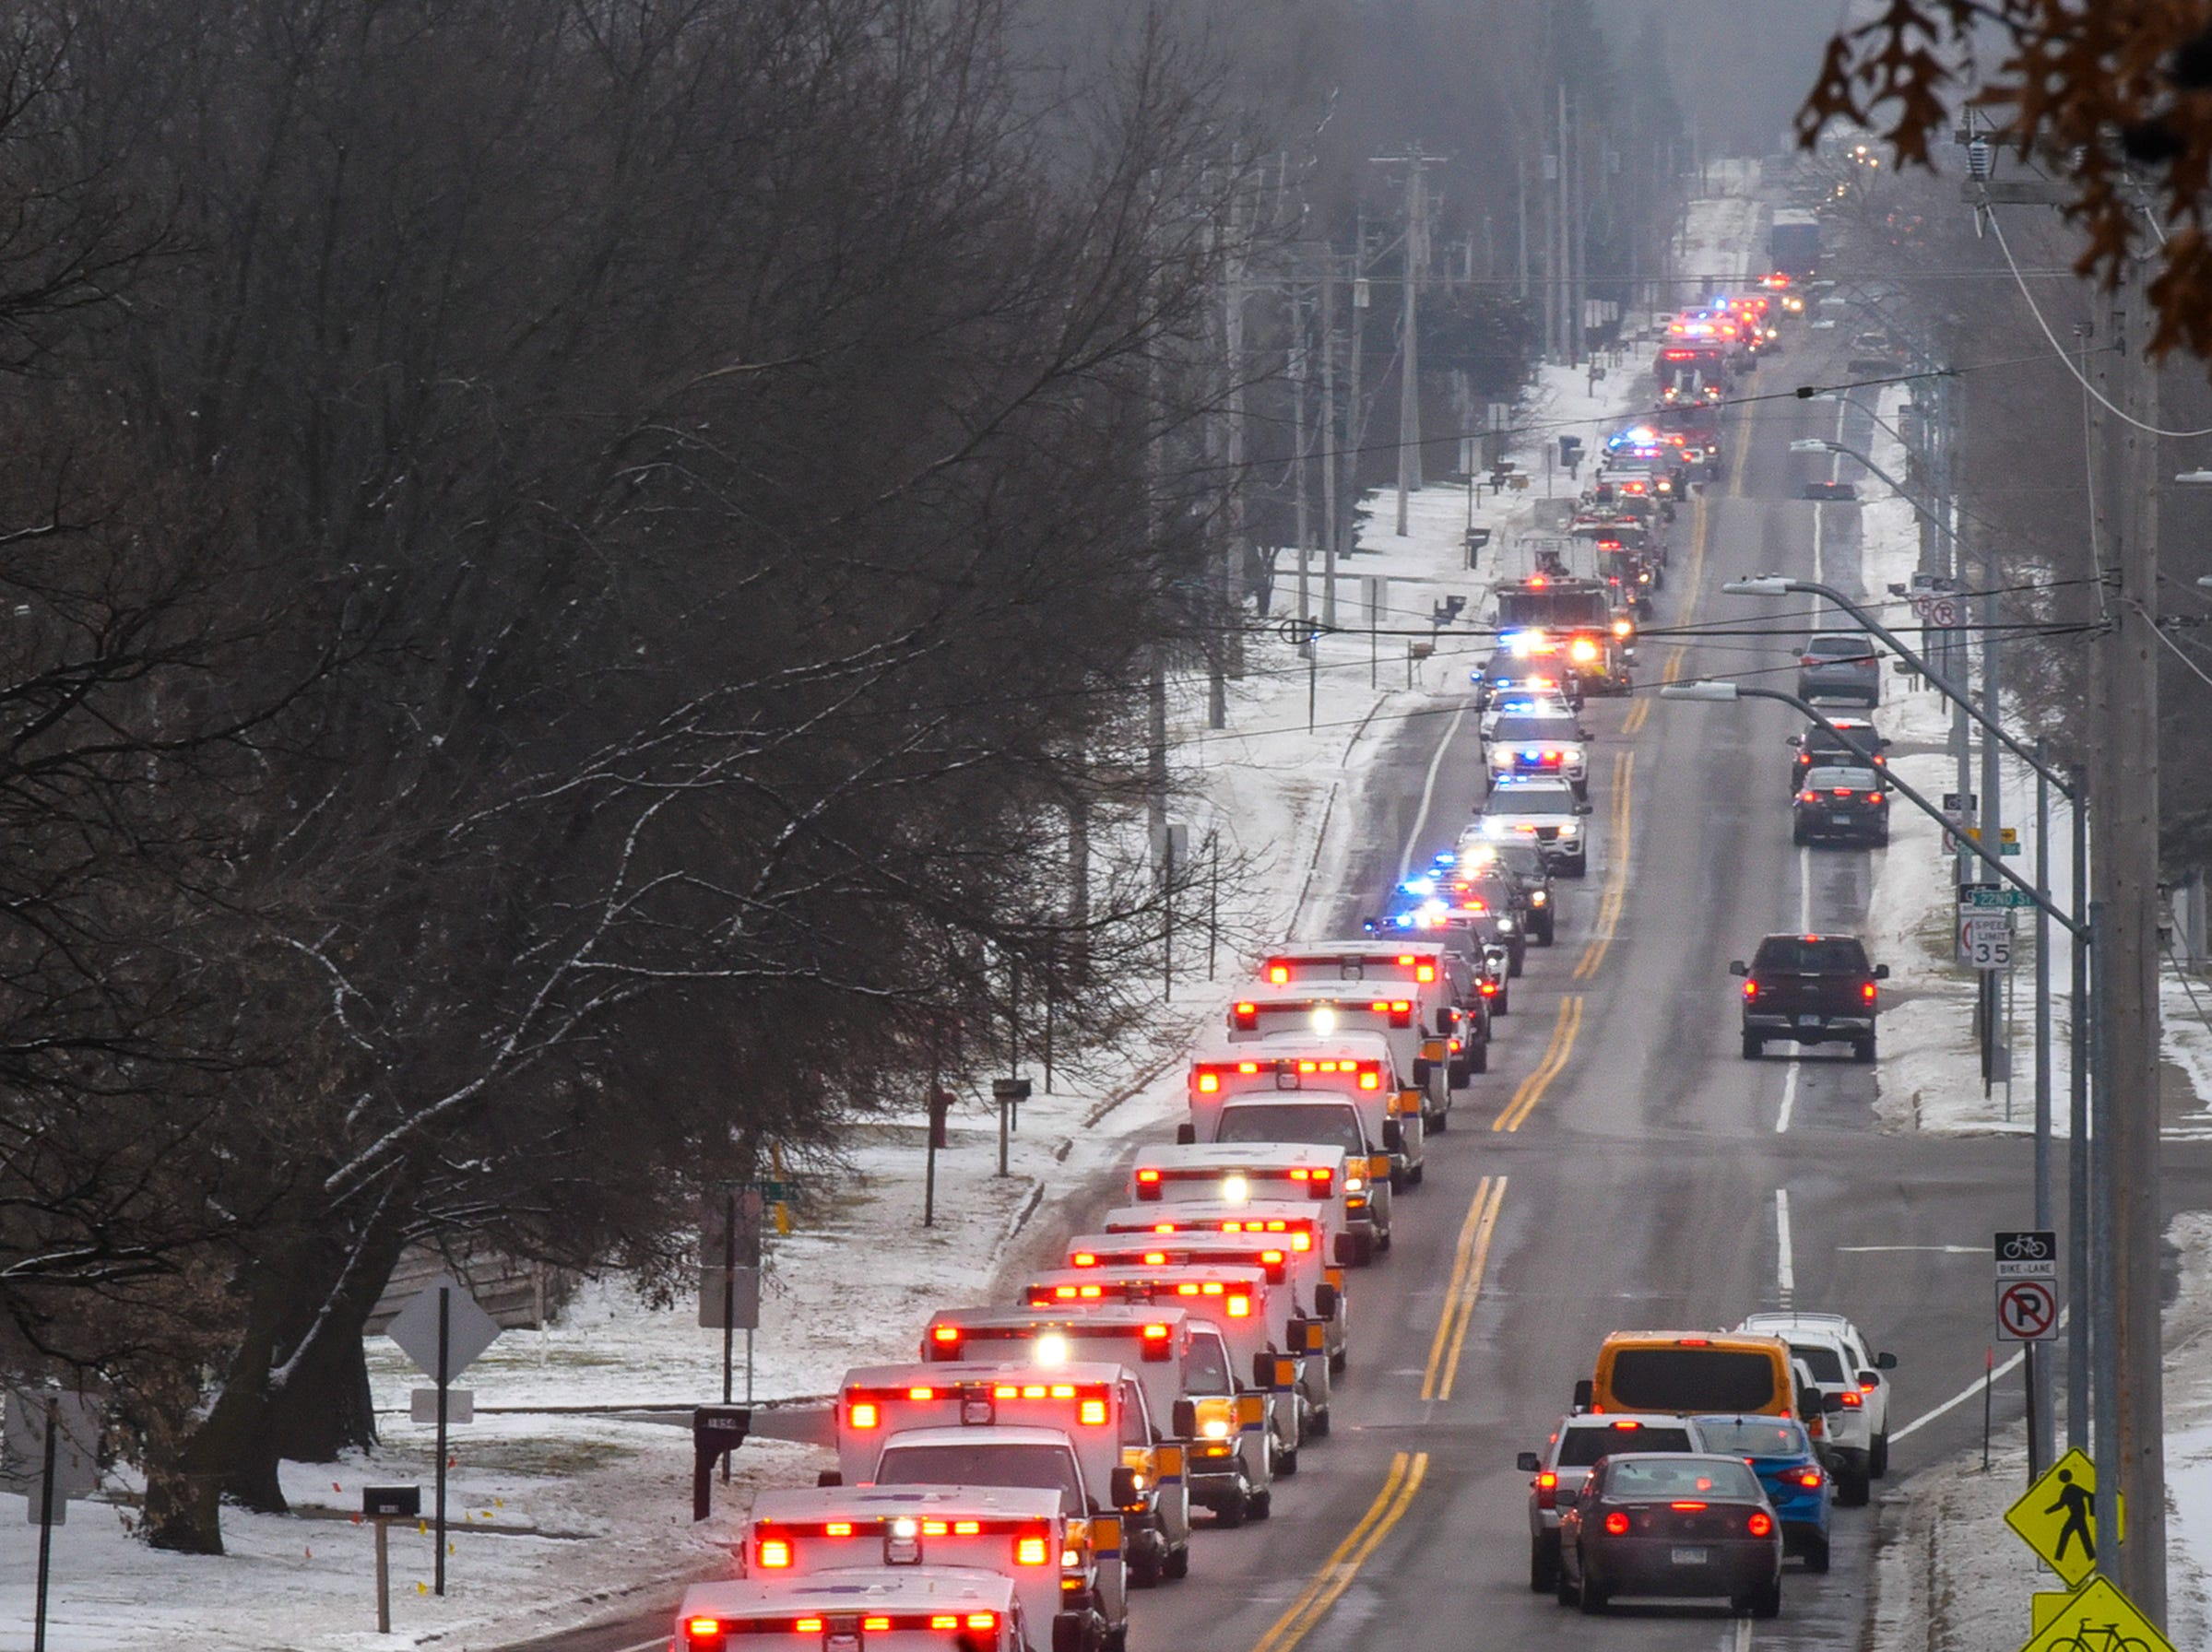 A long line of emergency vehicles forms a procession to honor paramedic Nicole Van Heel Friday, Nov. 30, along Cooper Avenue South following her funeral in St. Cloud. Van Heel died Nov. 25 from complications related to a stroke she suffered while on duty. Police, fire and EMS vehicles from agencies throughout the state participated in the procession and funeral.